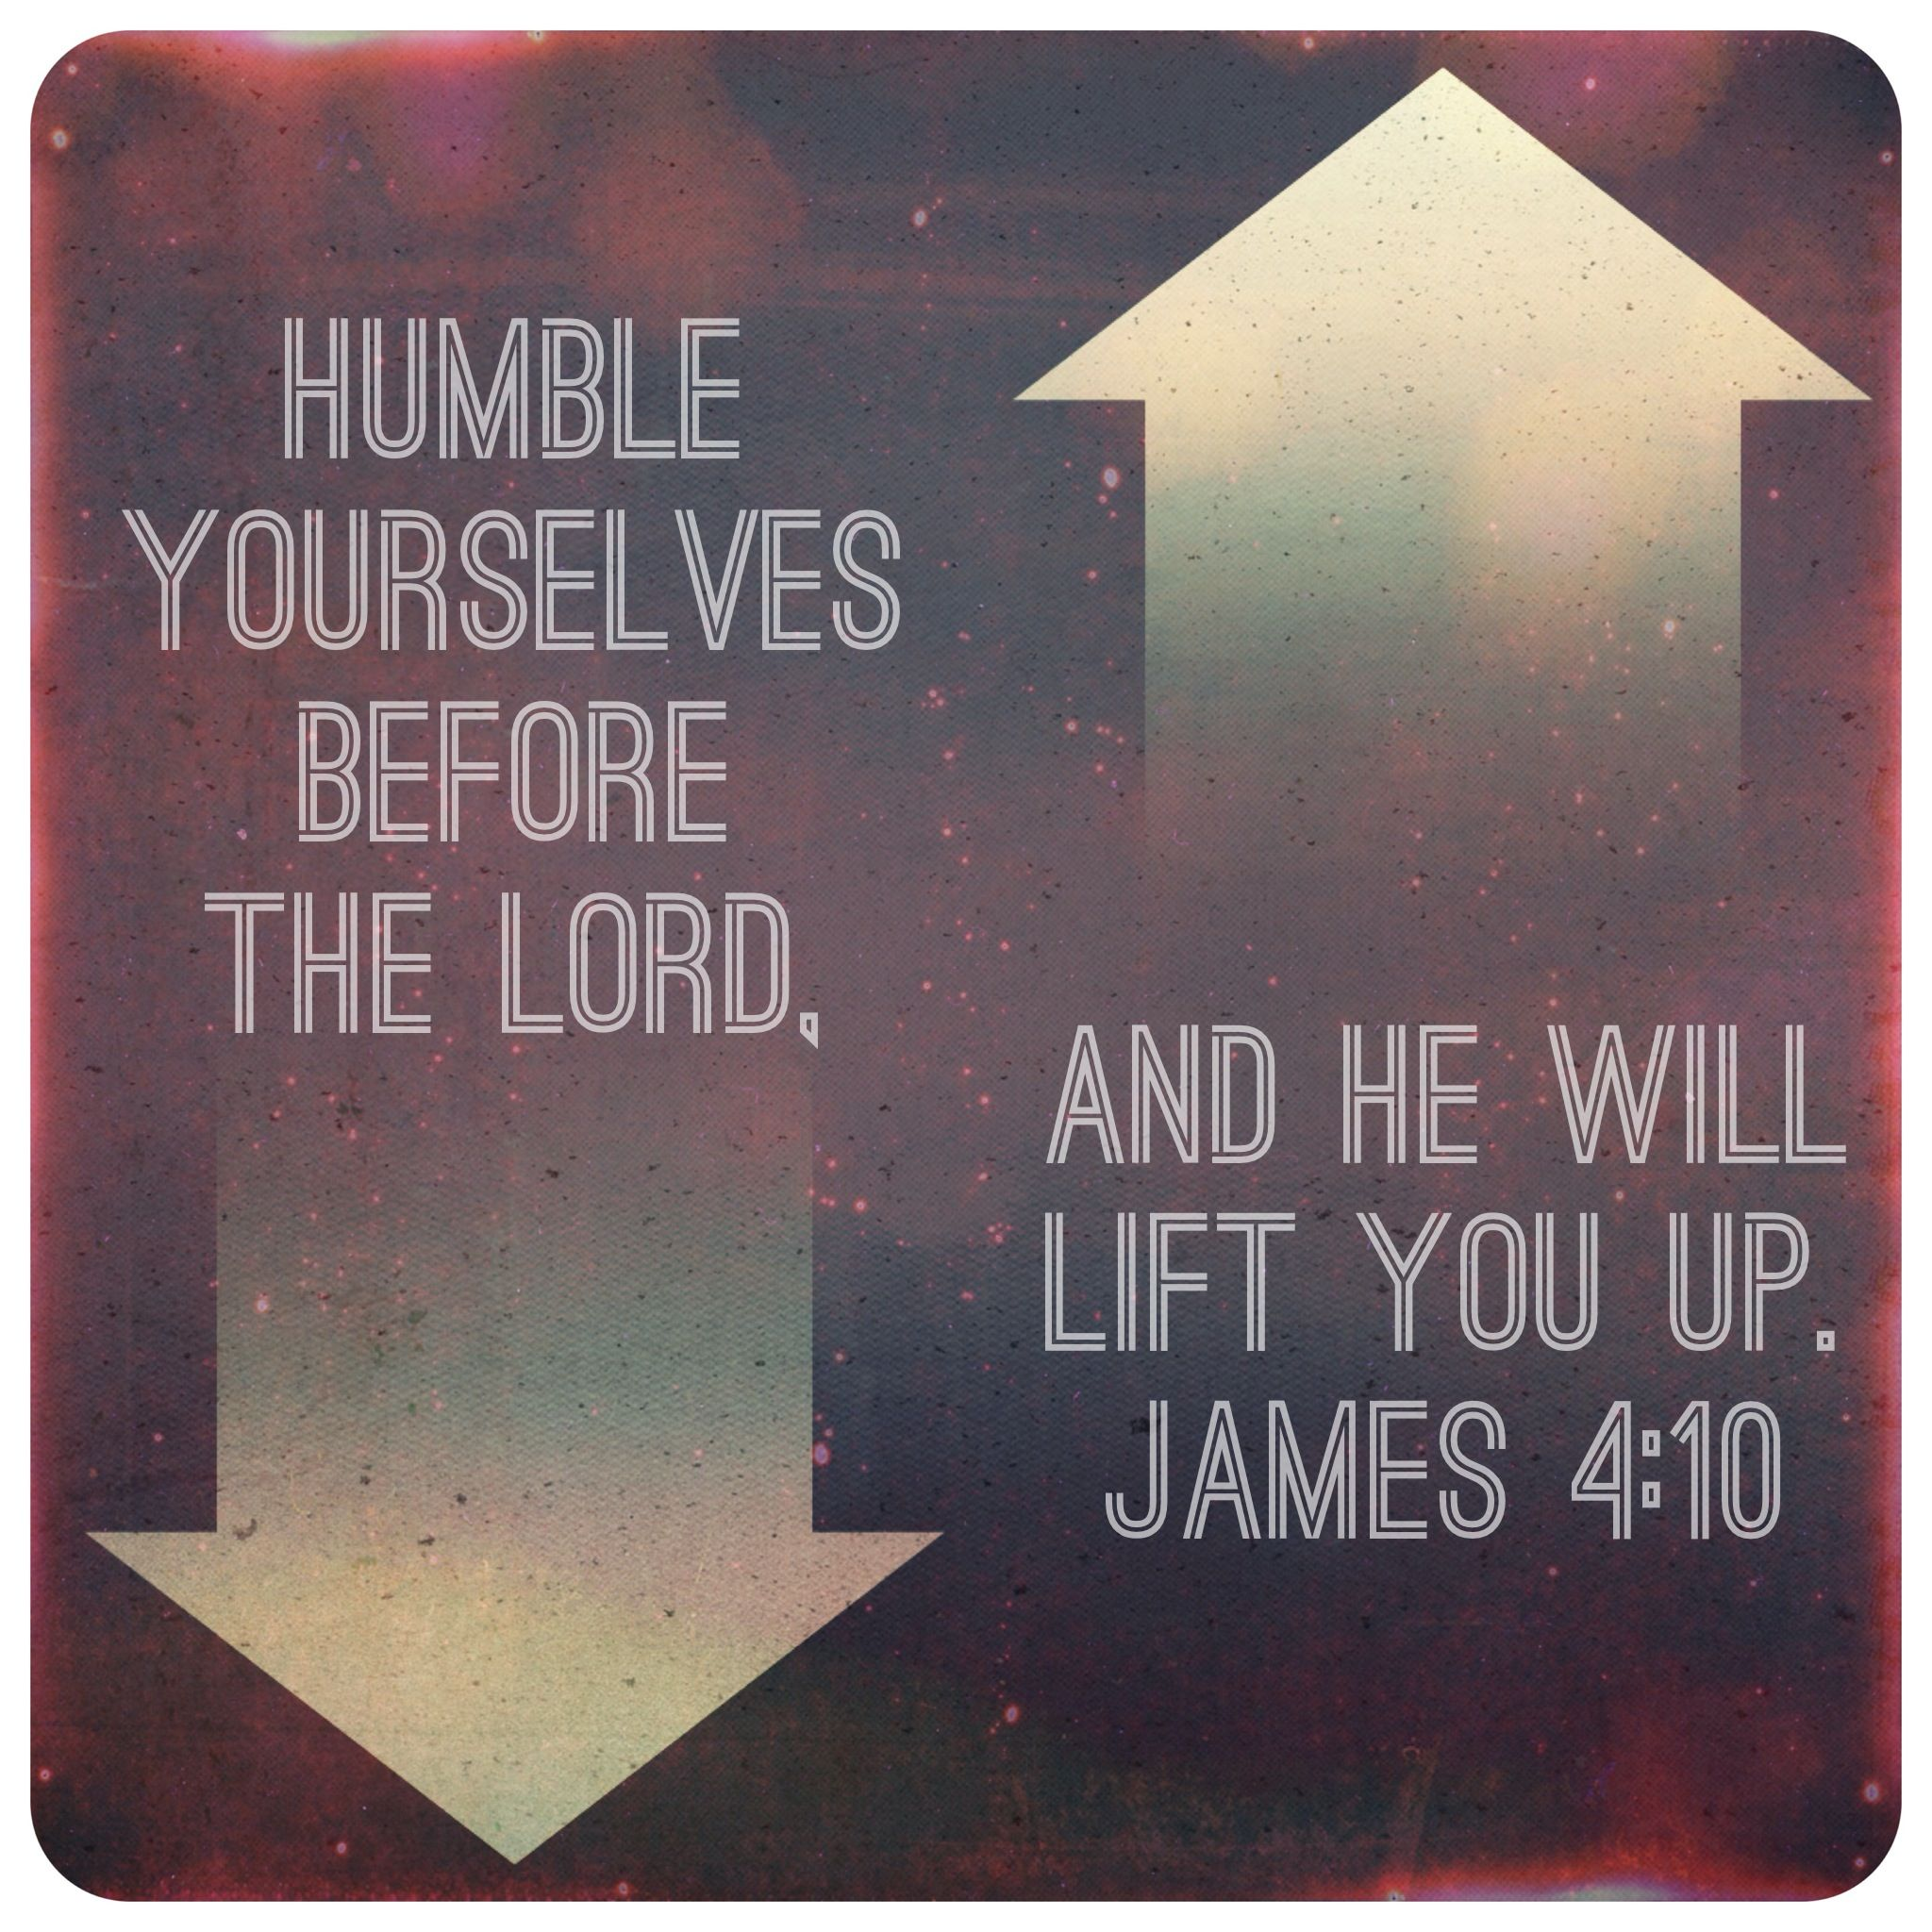 Humble Yourselves Before The Lord. And He